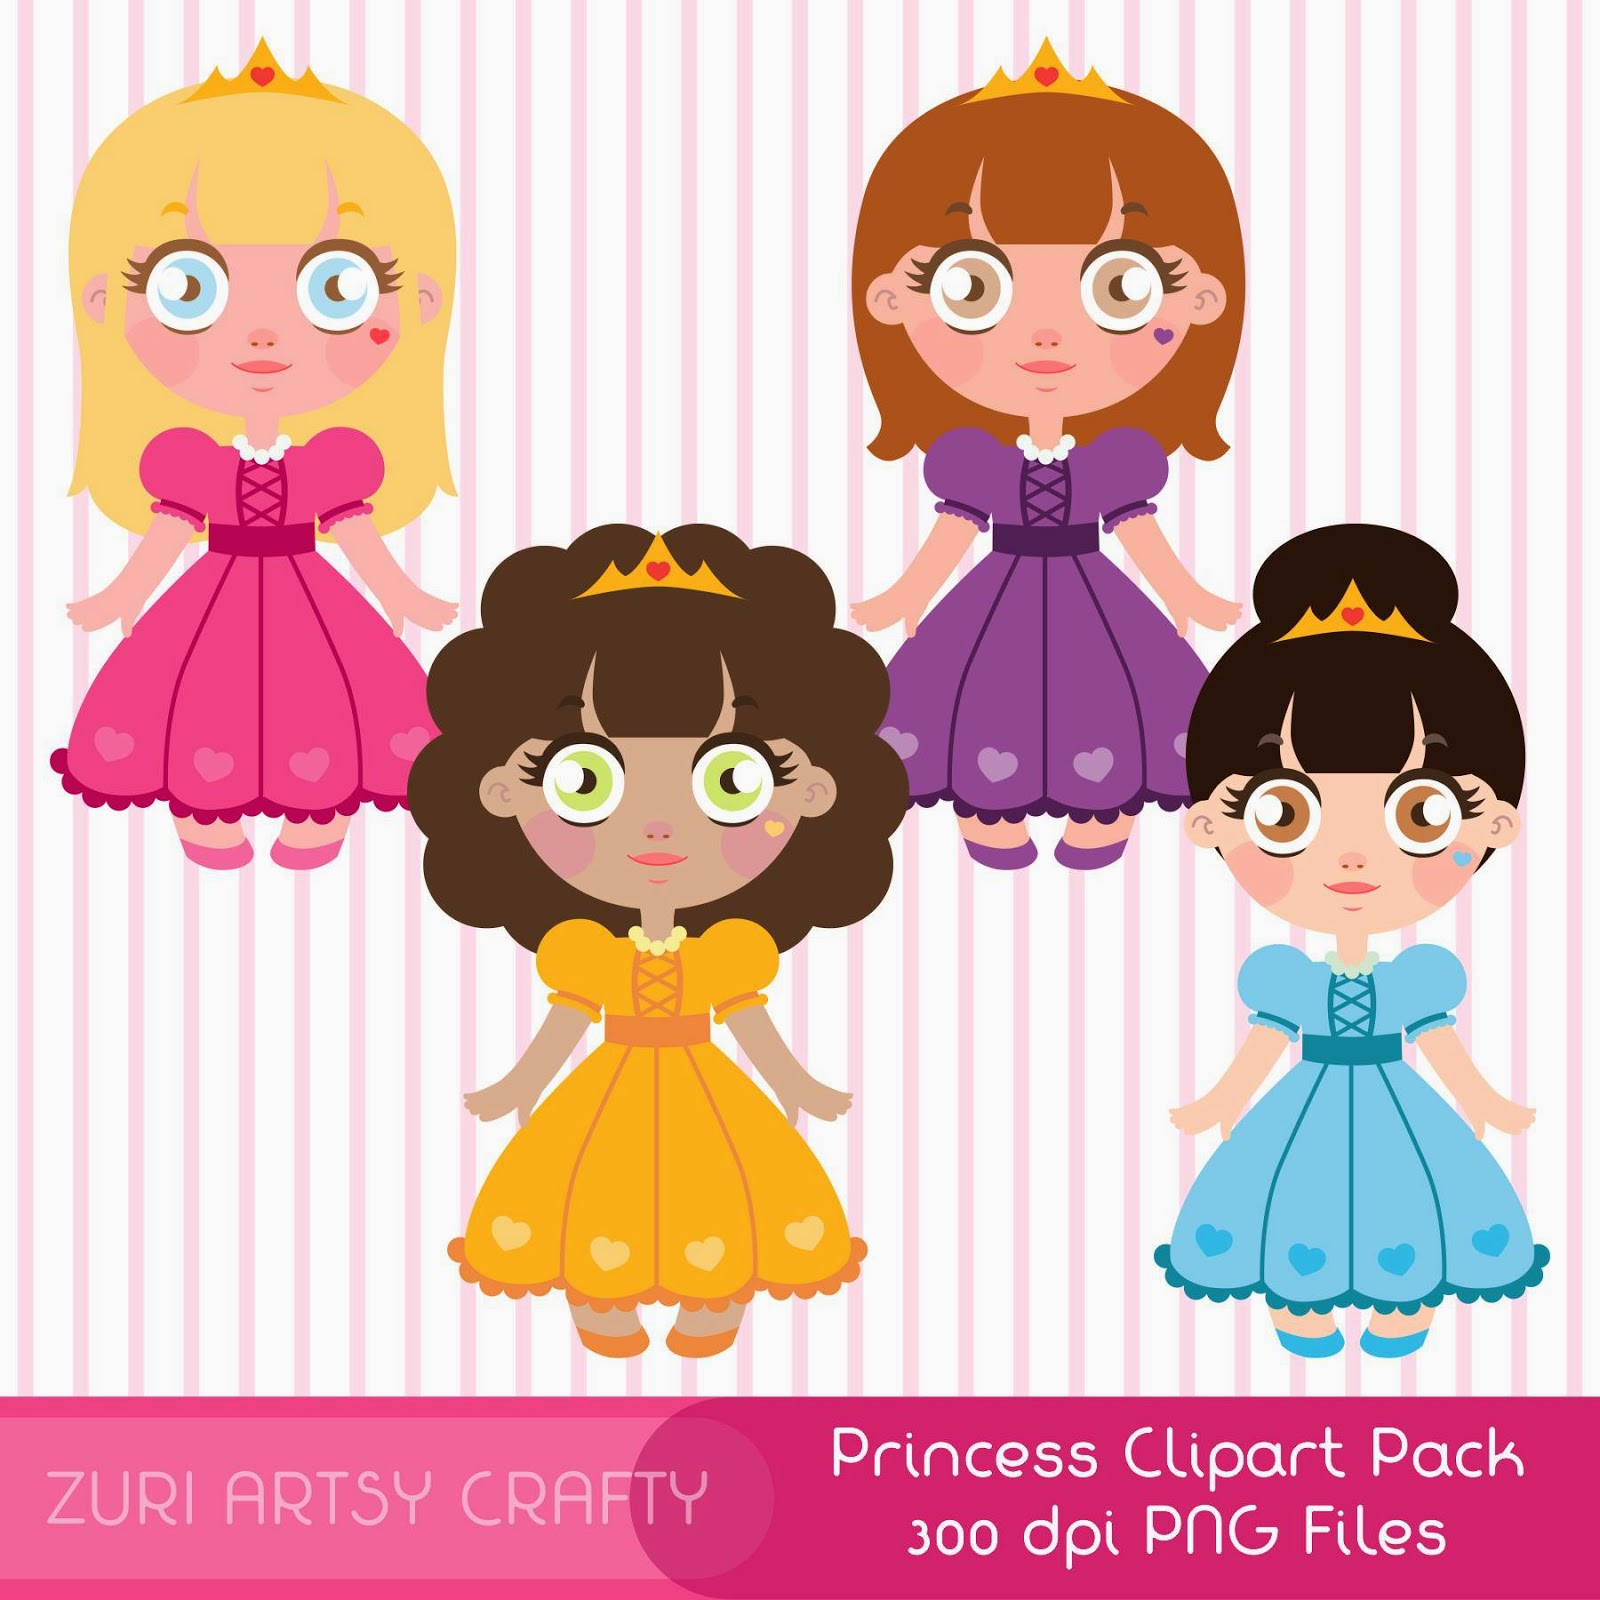 https://www.etsy.com/listing/184088738/cute-princess-1-digital-clipart-princess?ref=shop_home_active_1